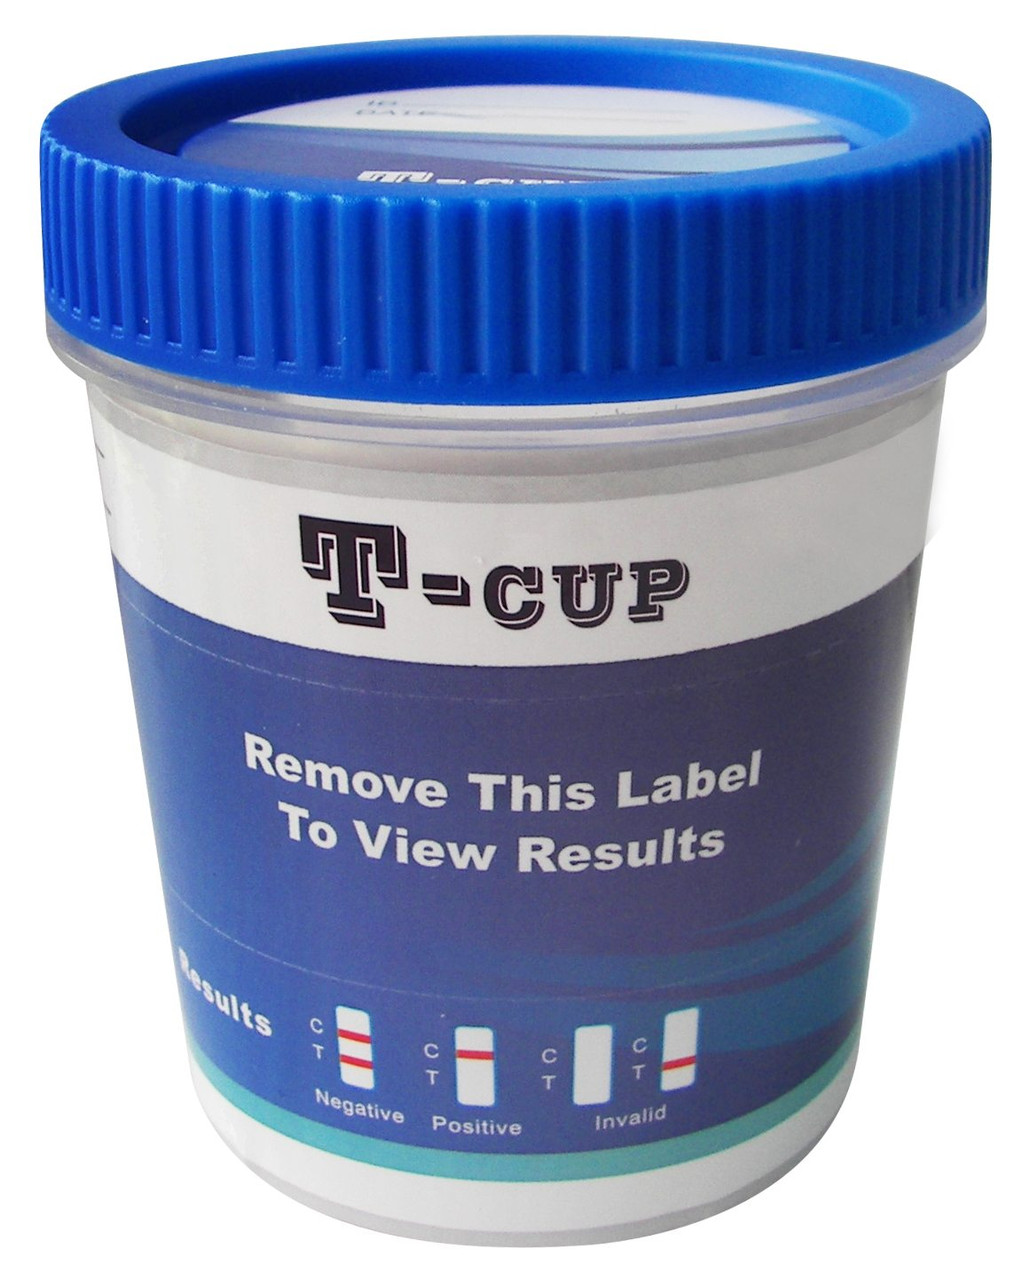 T-Cup Drug Test Cup 12-Panel Label ● Female User Friendly ● No Donor Tampering Possible ● Dark Line Present As Soon As 1 Minute ● Up To 17 Drug Panels Plus Adulteration